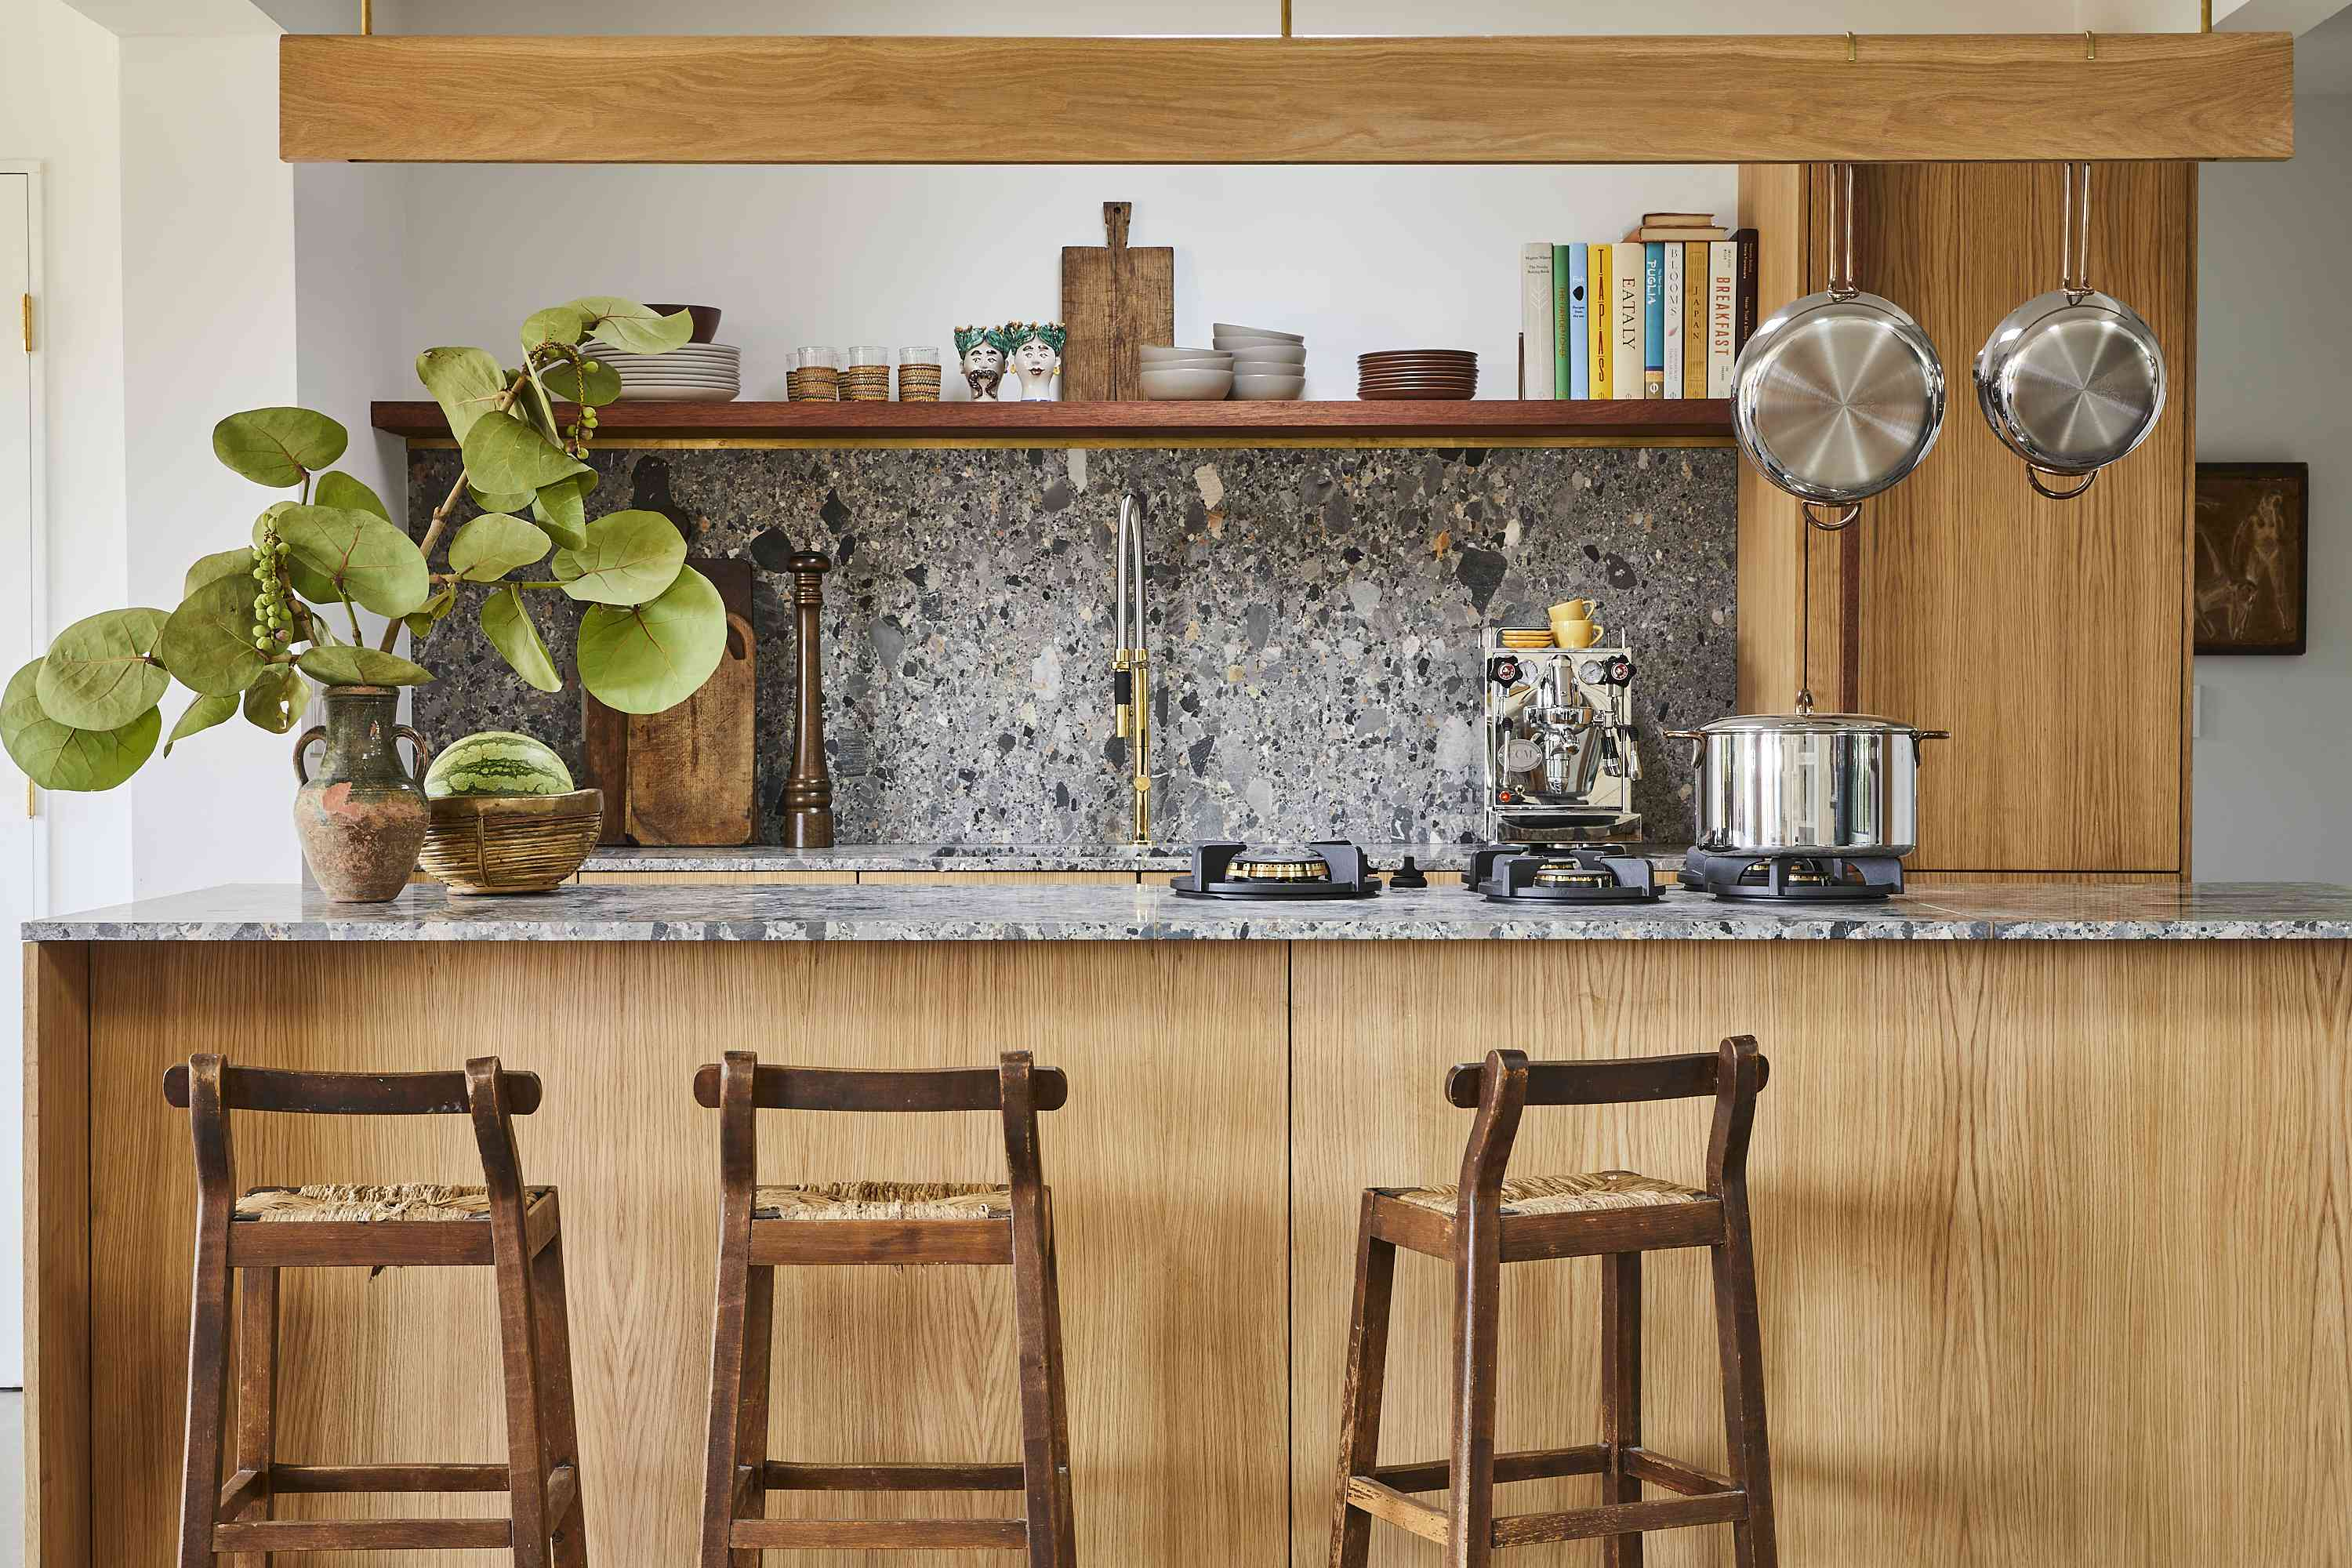 9 Open Kitchen Cabinet Ideas That Embrace the Trend